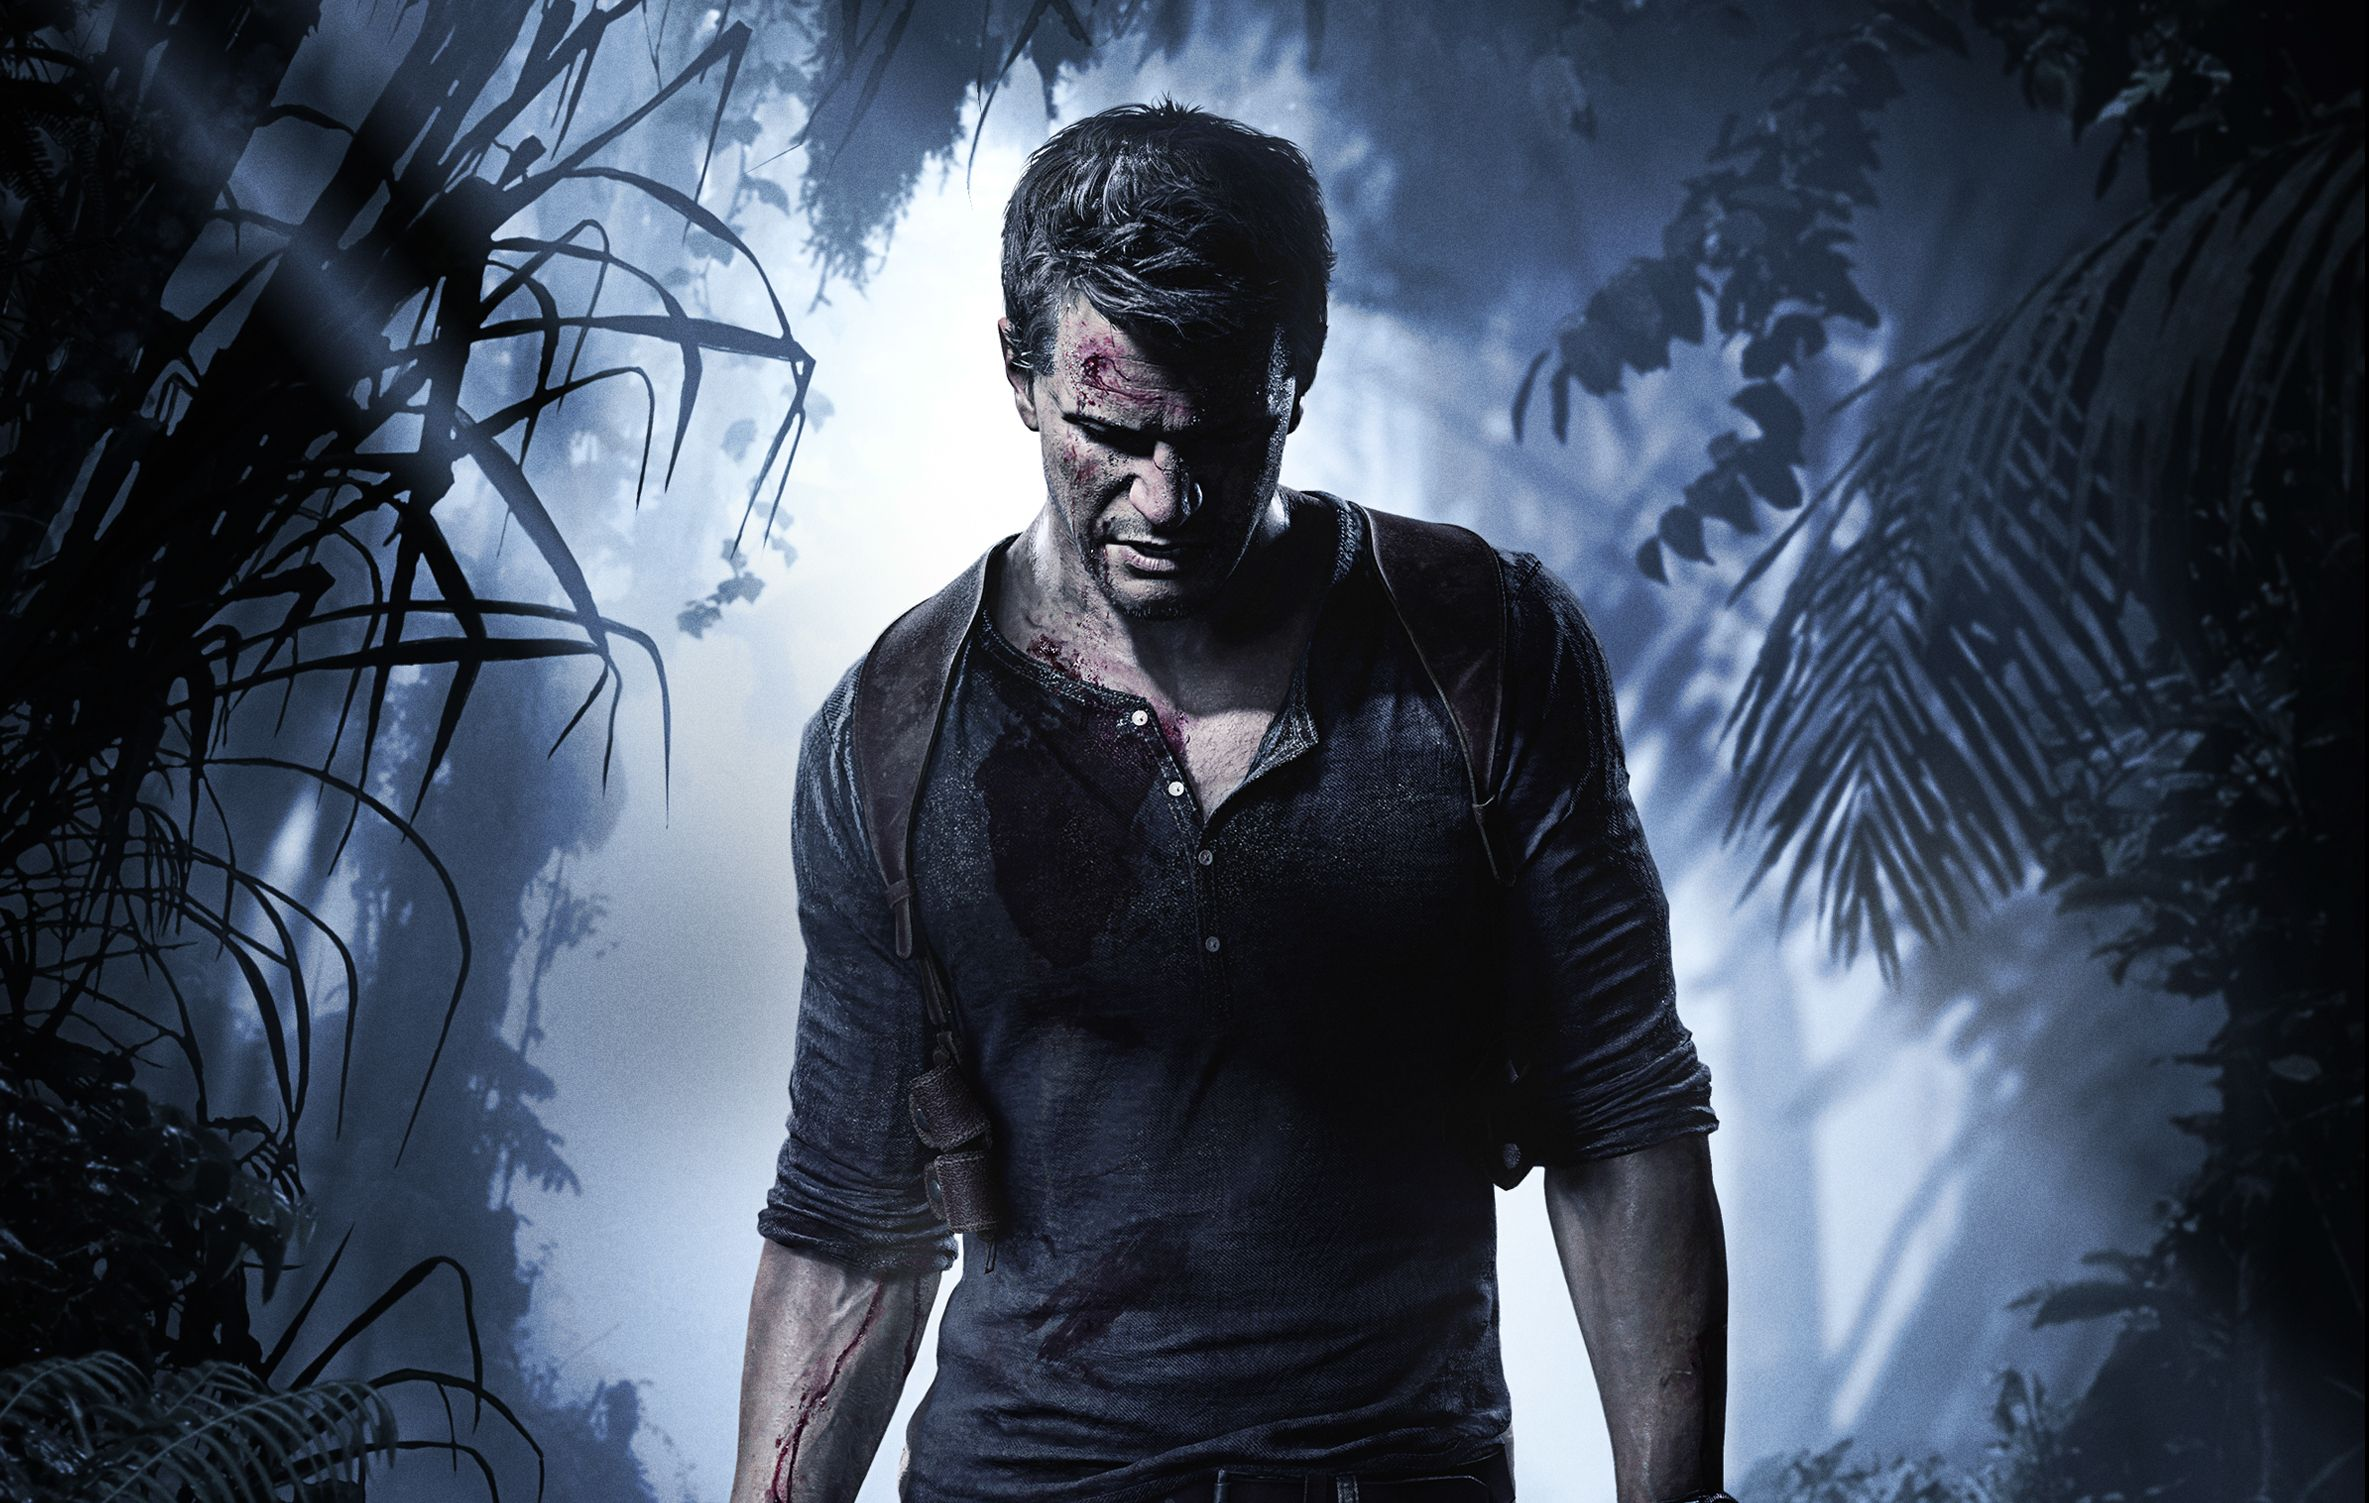 Filme de Uncharted com Tom Holland perde diretor